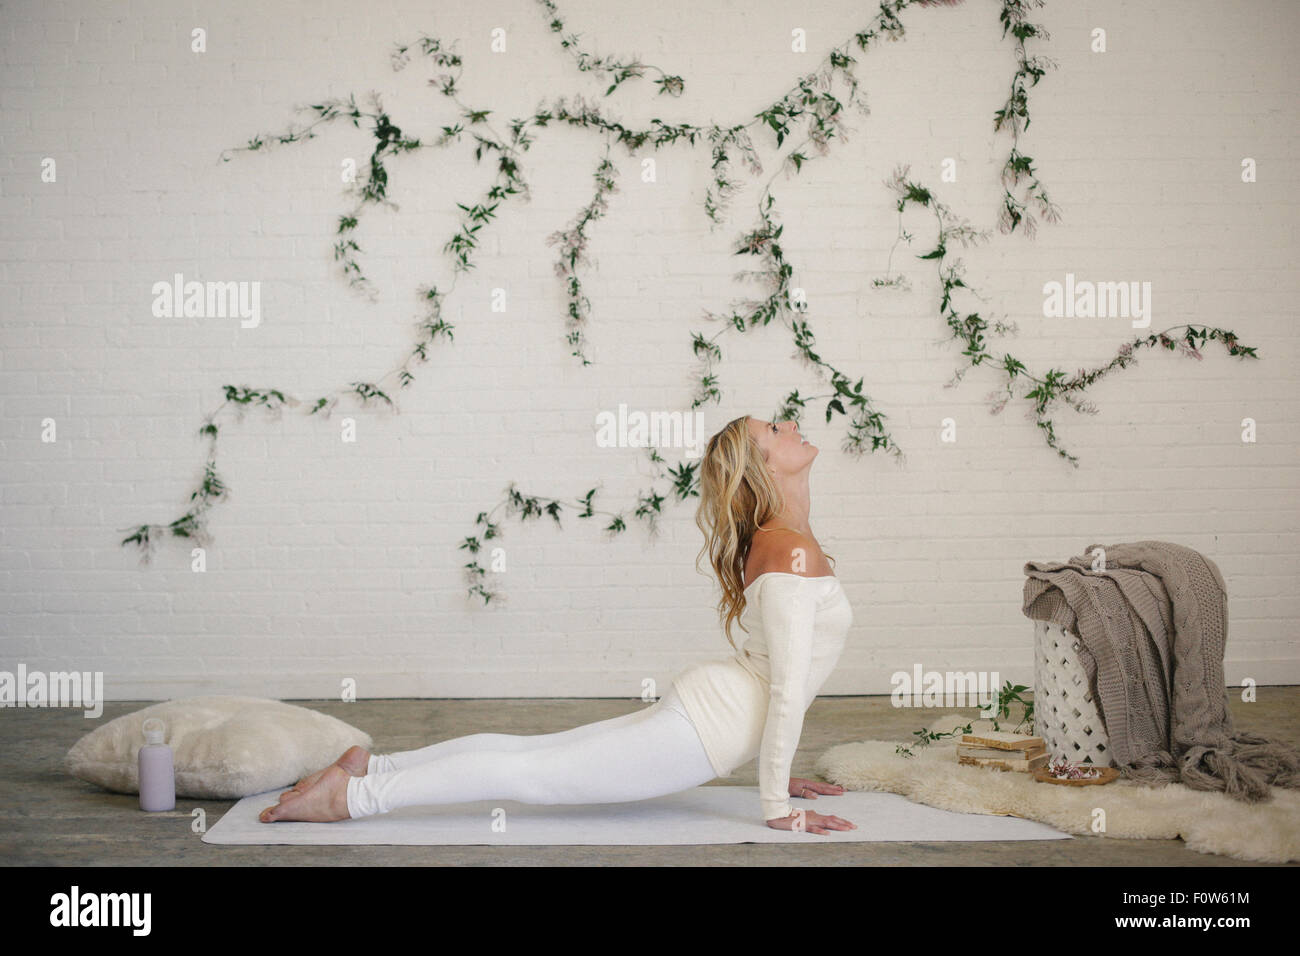 A blonde woman in a white leotard and leggings, lying on a white mat in a room, arching he back in a stretch. - Stock Image